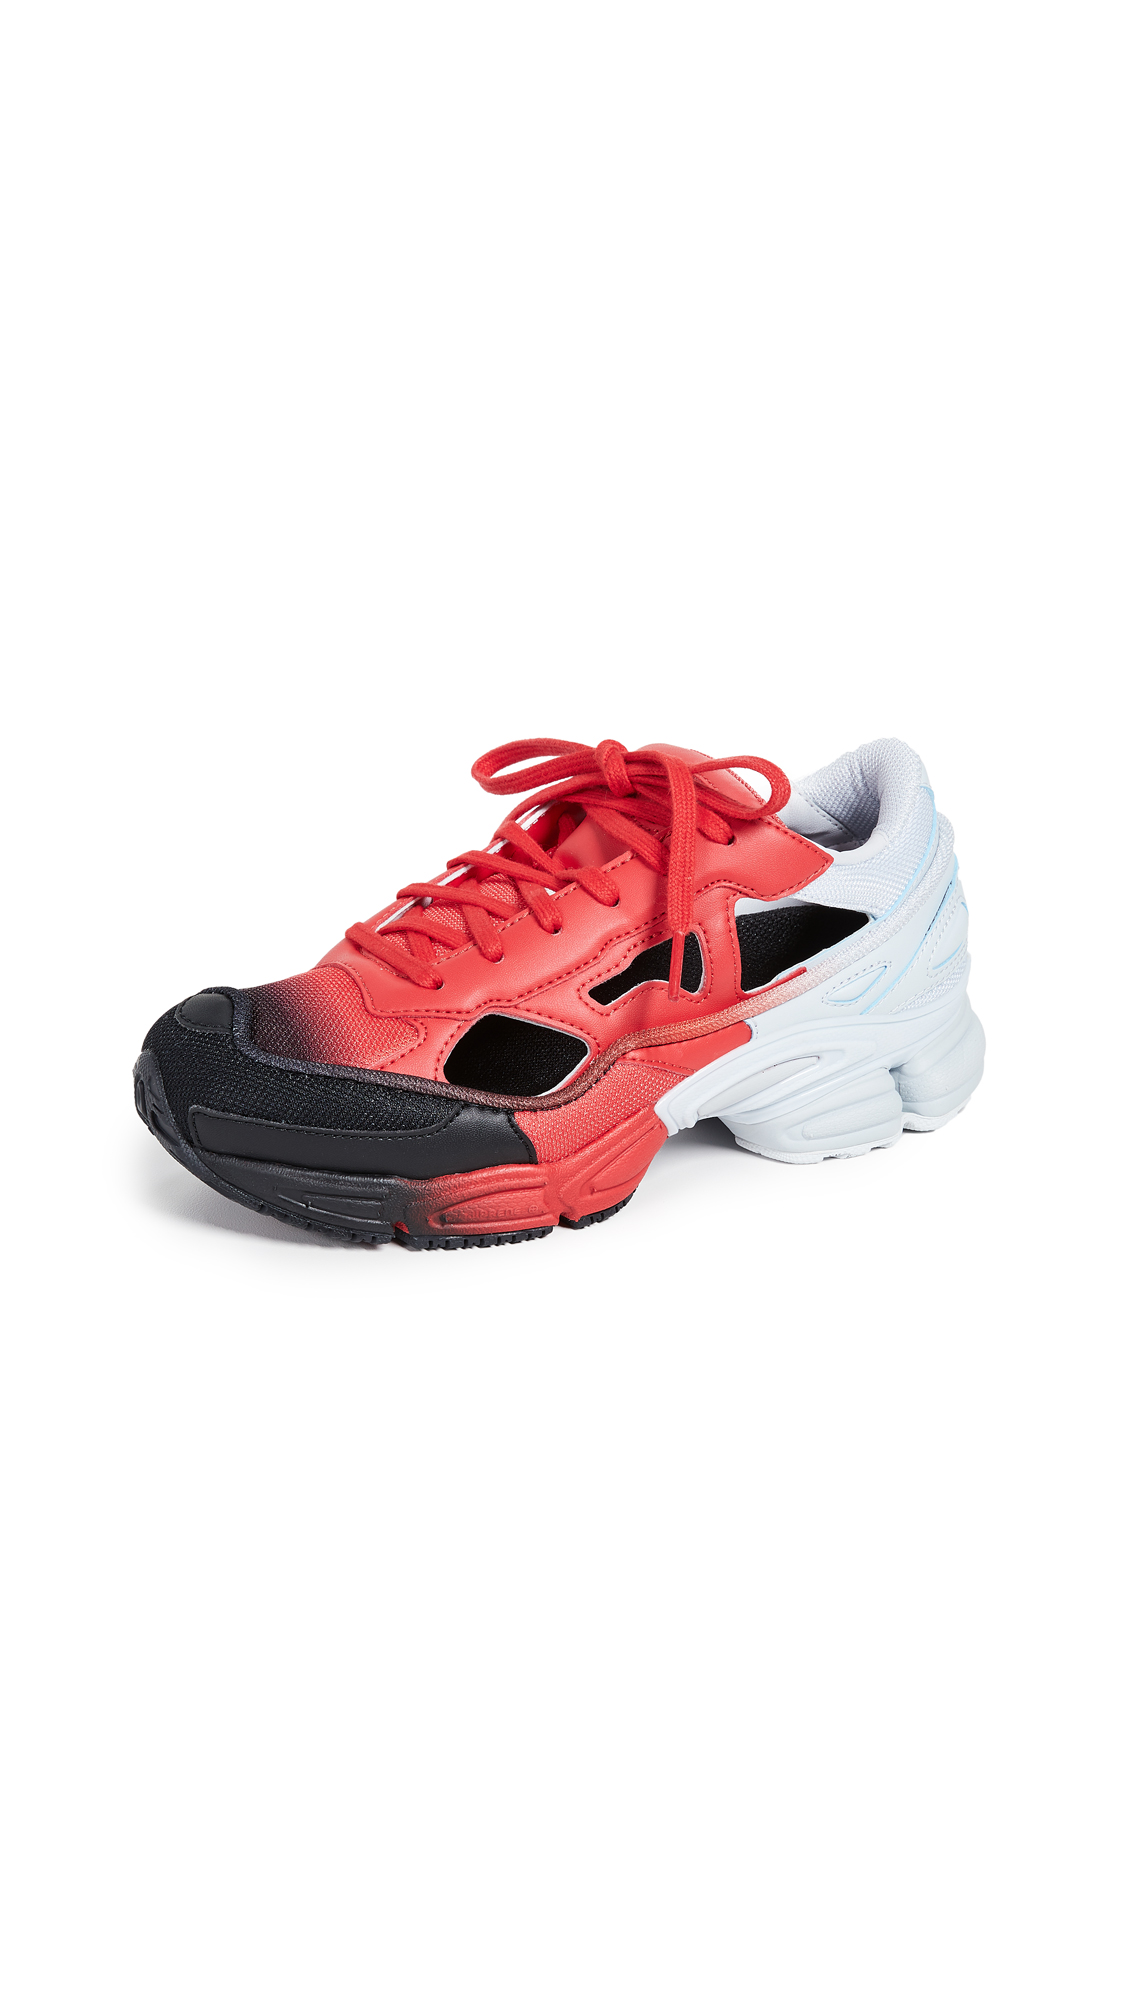 adidas x Raf Simons Replicant Ozweego Sneakers - Red/Halo Blue/Core Black